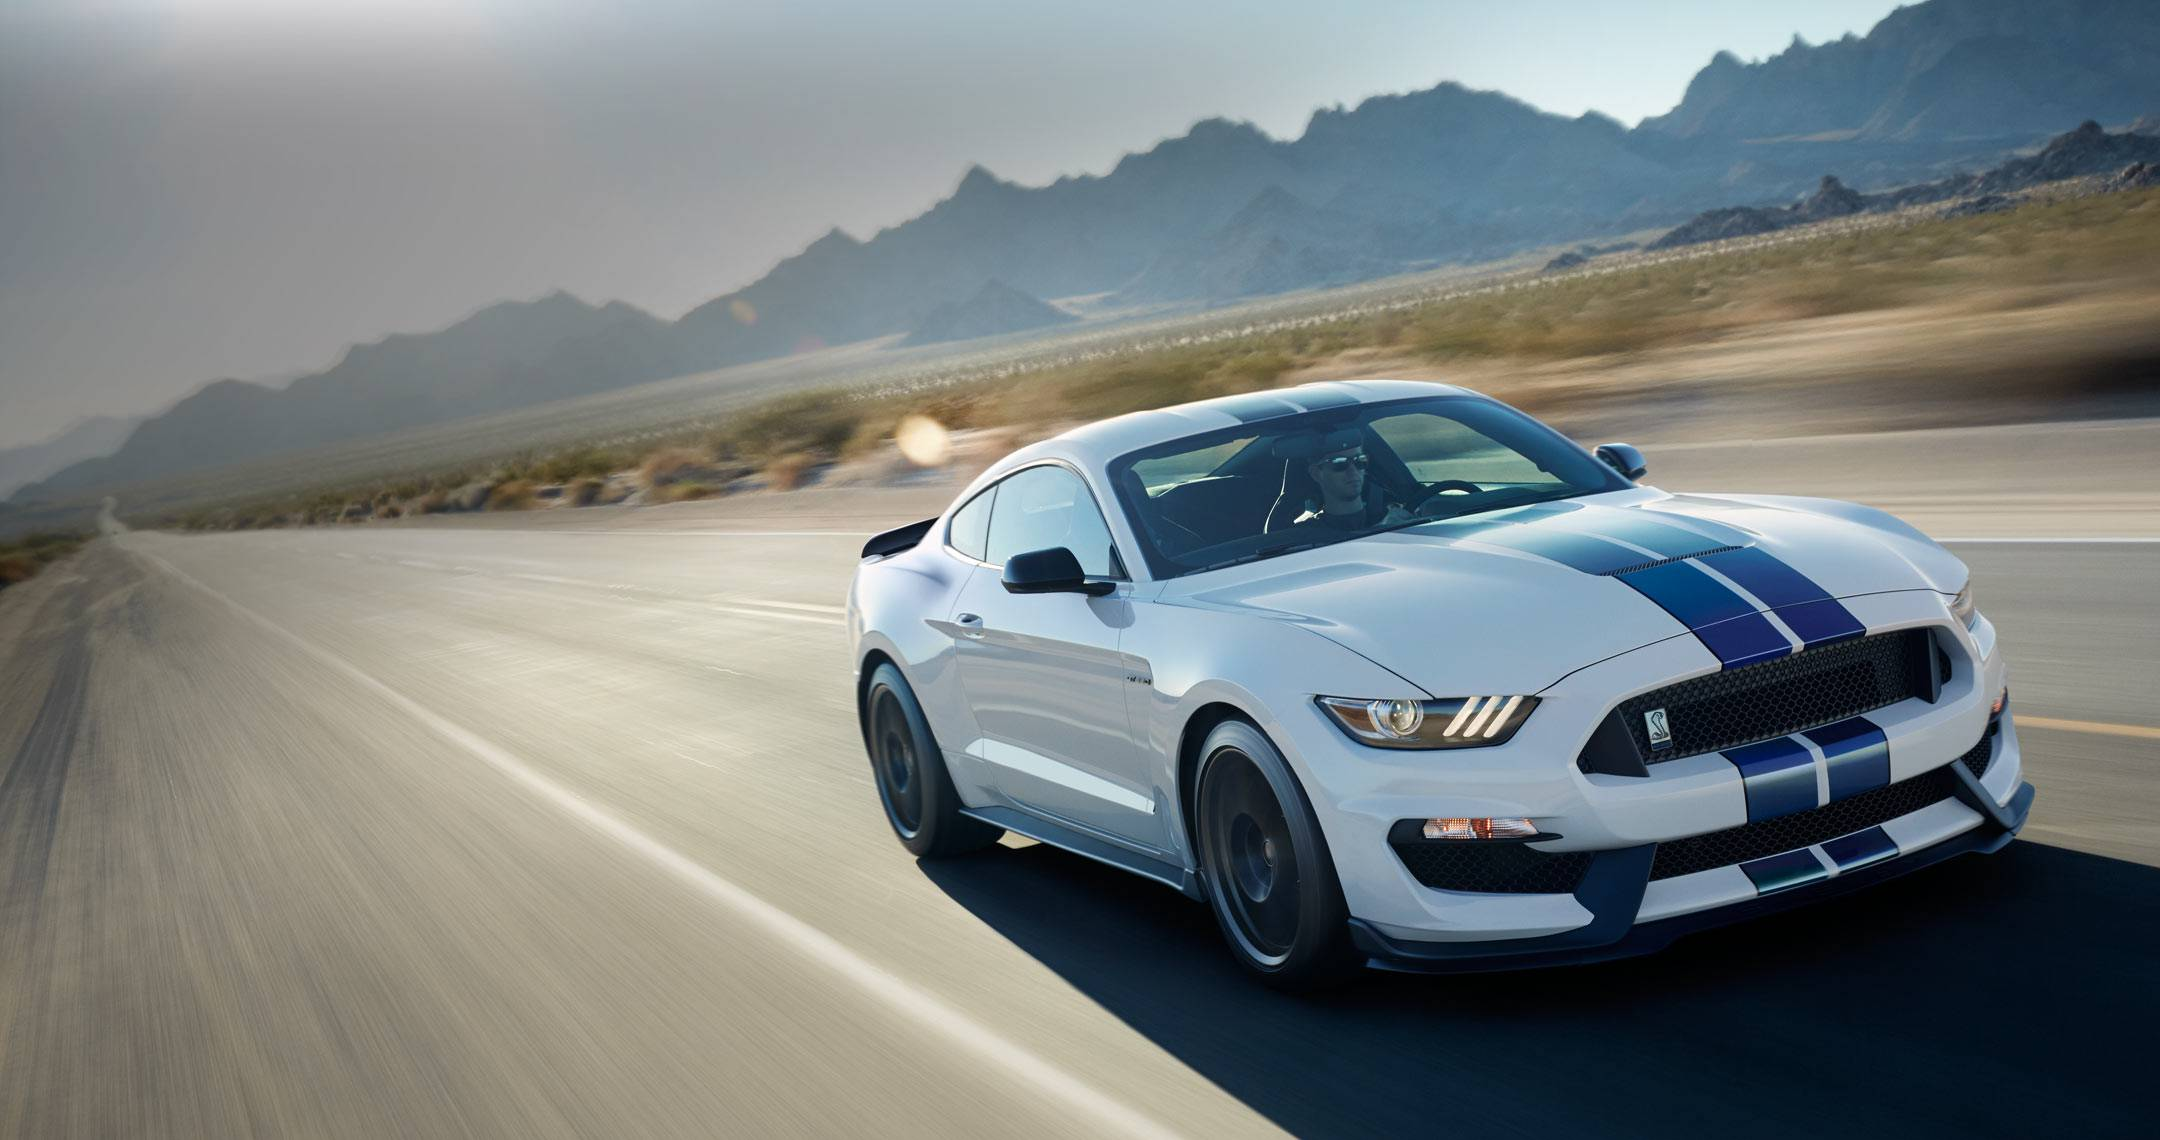 Ford Mustang Lease >> Ford Mustang Shelby Gt350 Lease Deals Incentives